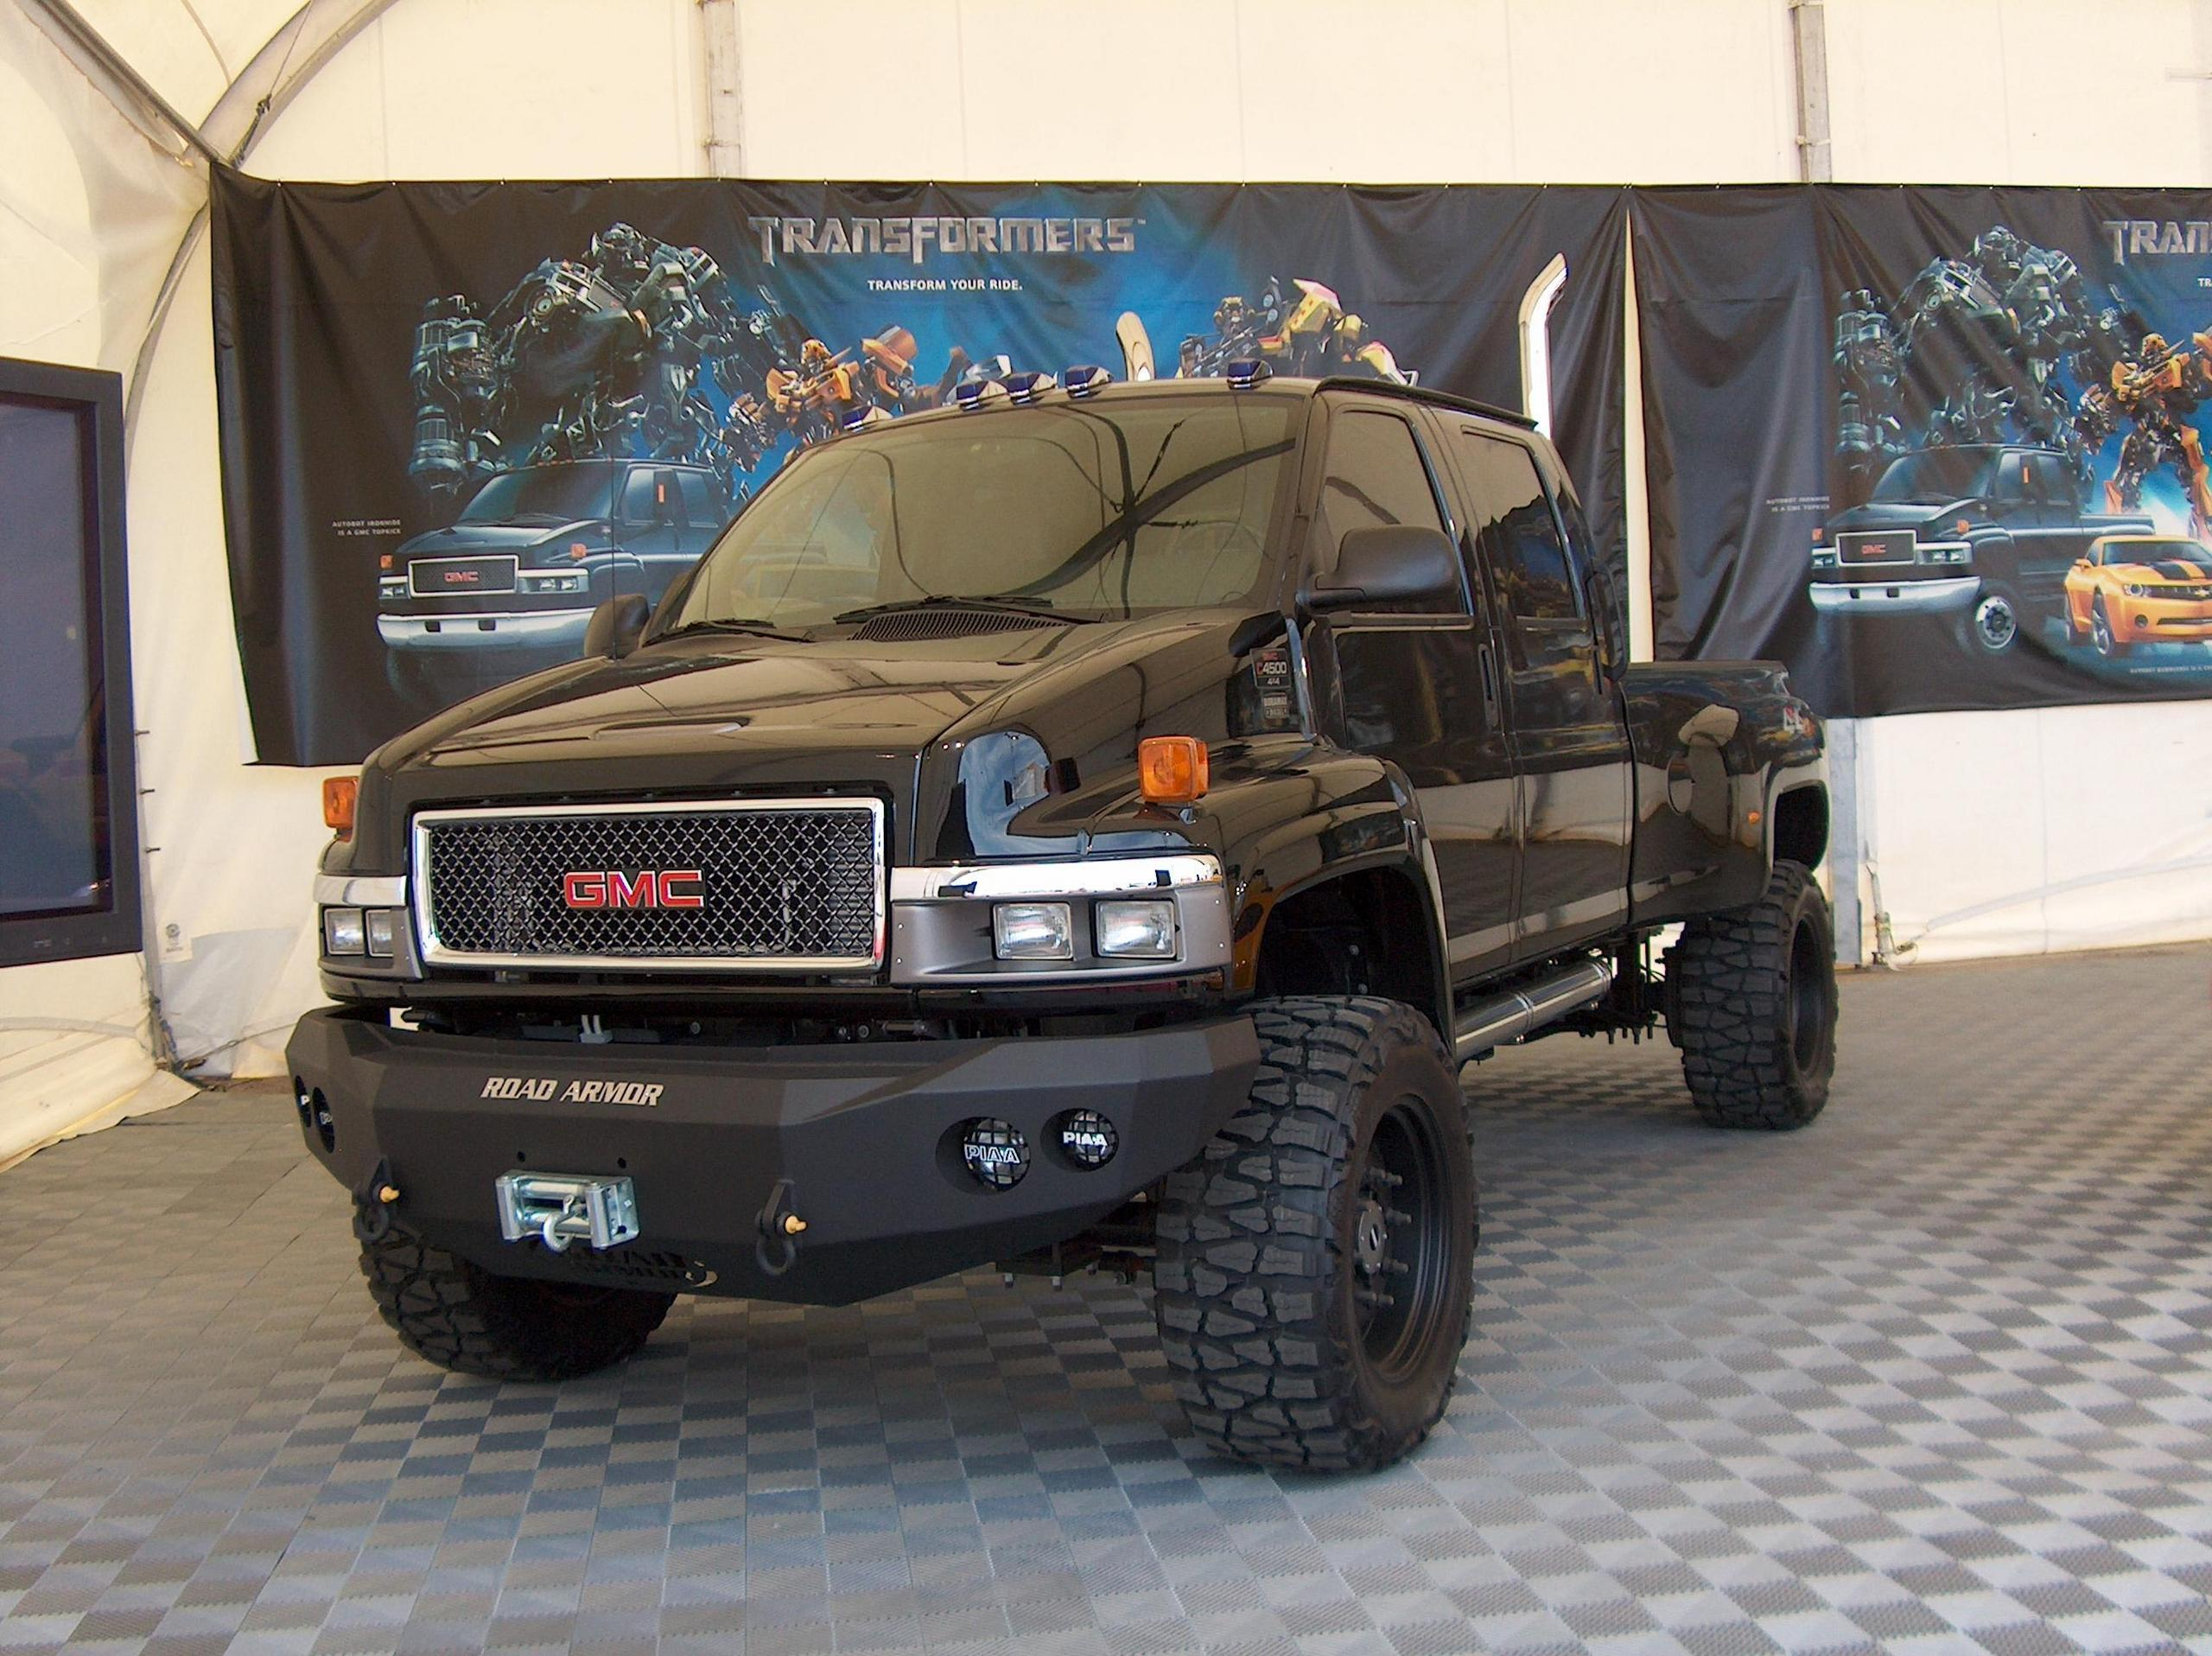 Transformers Ironhide Truck GMC